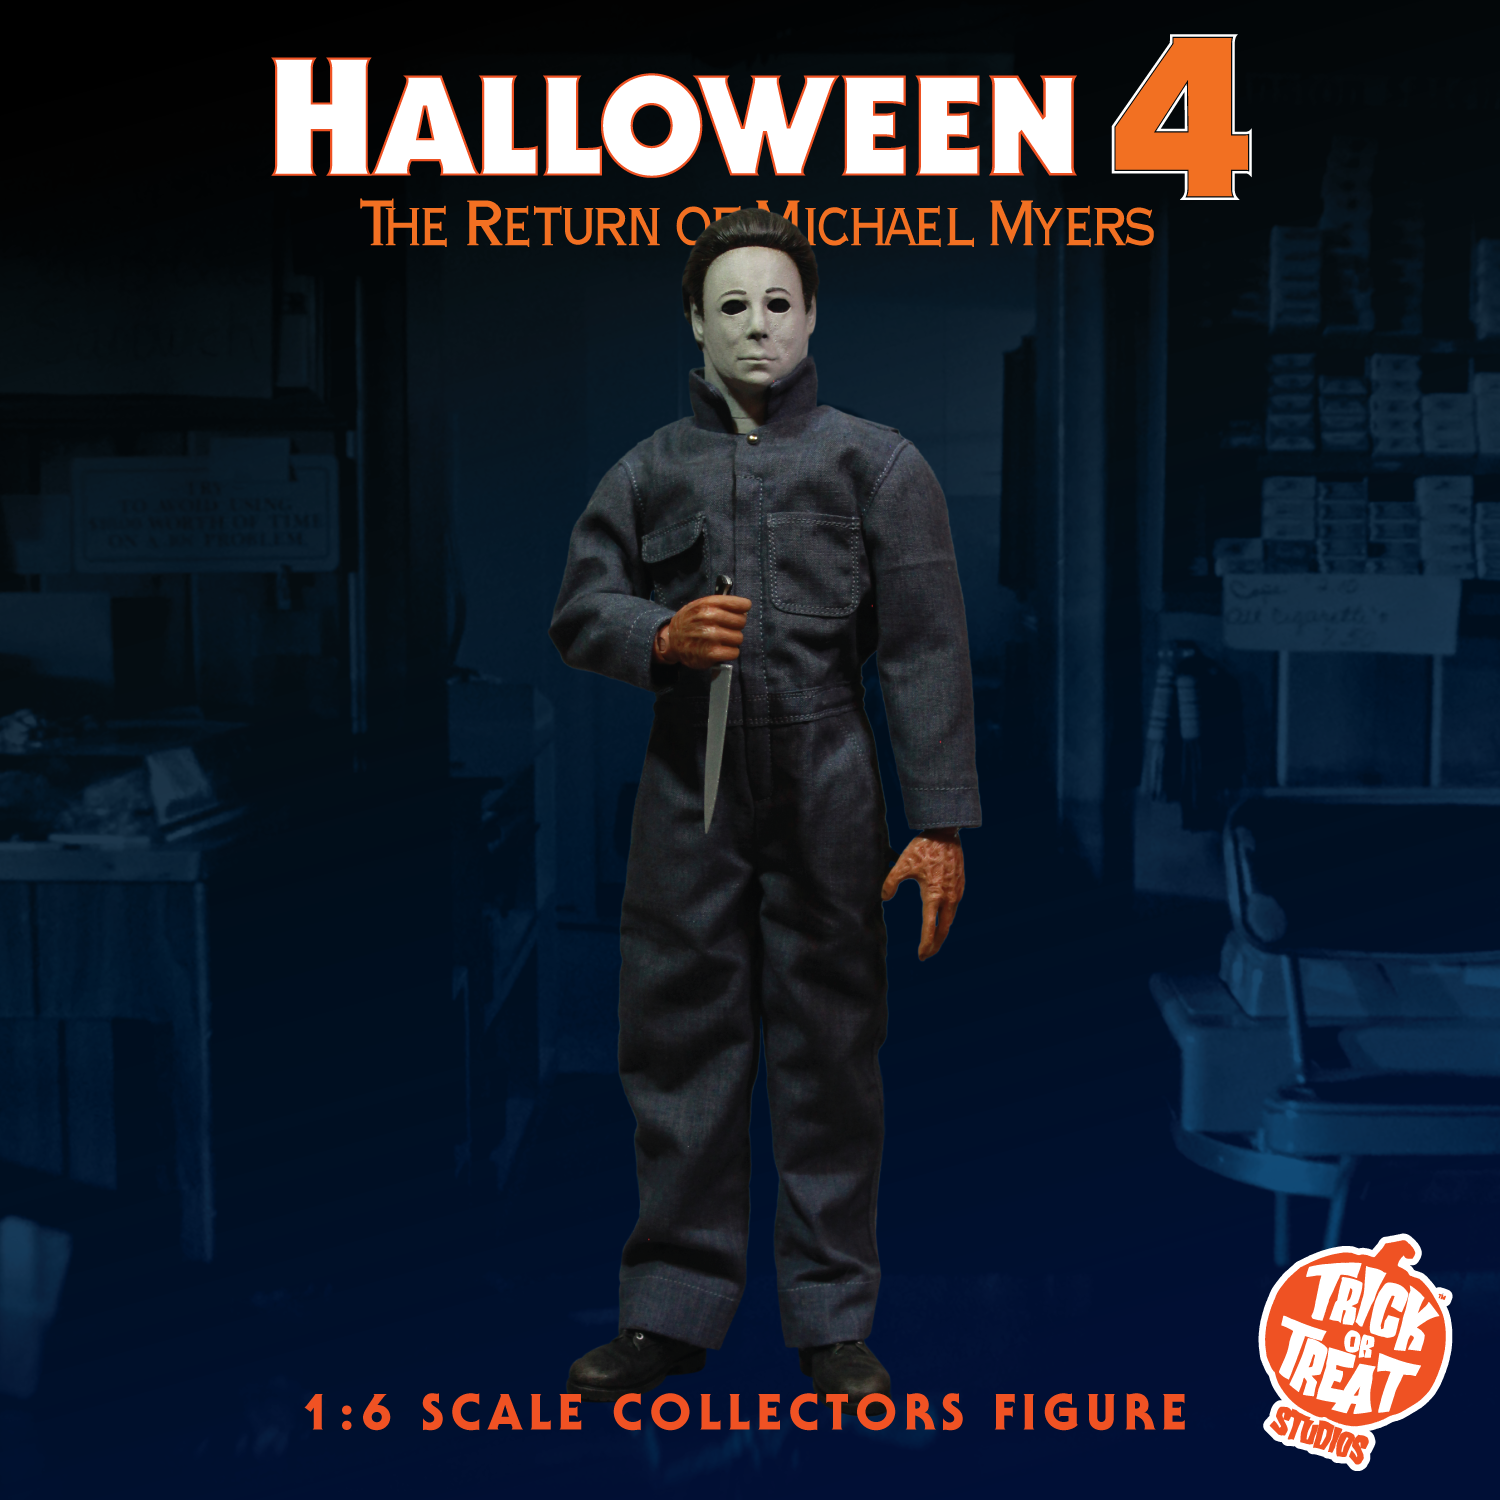 2020 Halloween Michael Myers Figure Trick or Treat Studios Unveils Officially Licensed Michael Myers 1